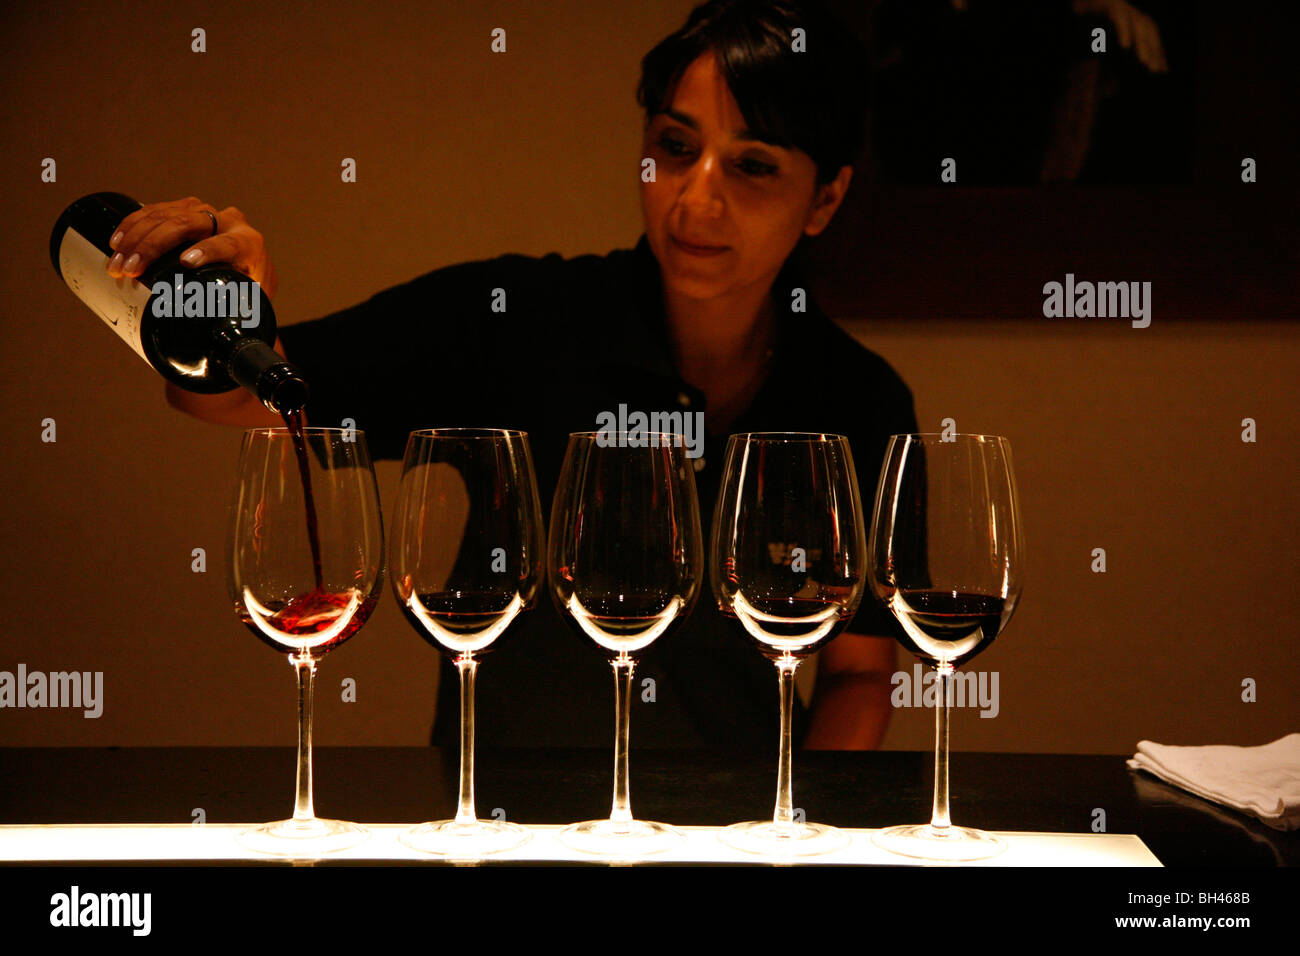 Woman pouring wine at the tasting room of Vines of Mendoza wine bar, Mendoza, Argentina. - Stock Image